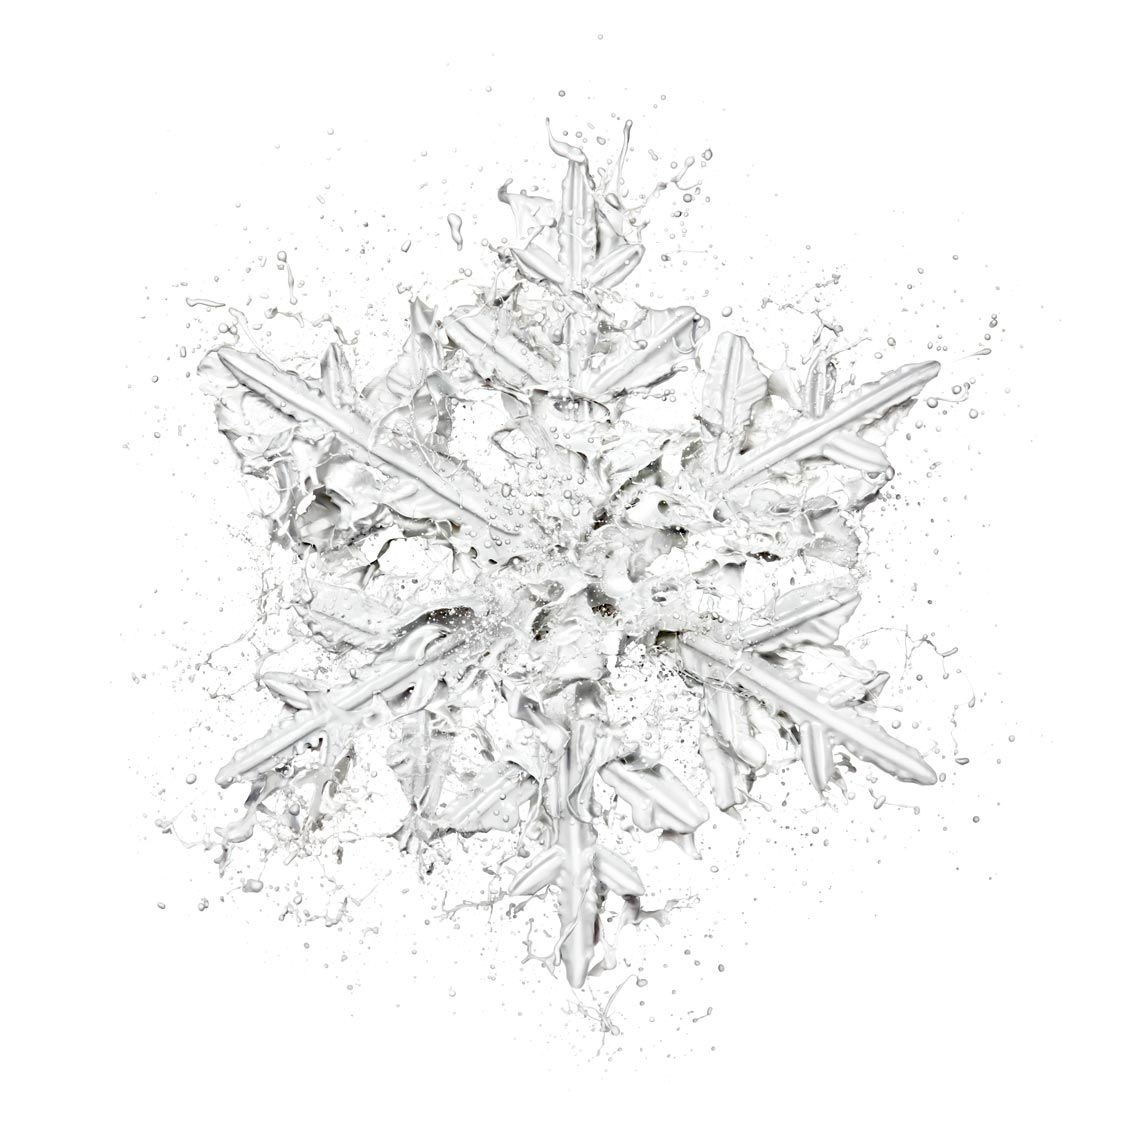 Snowflake-Edited-Stage-5-(Merged).jpg